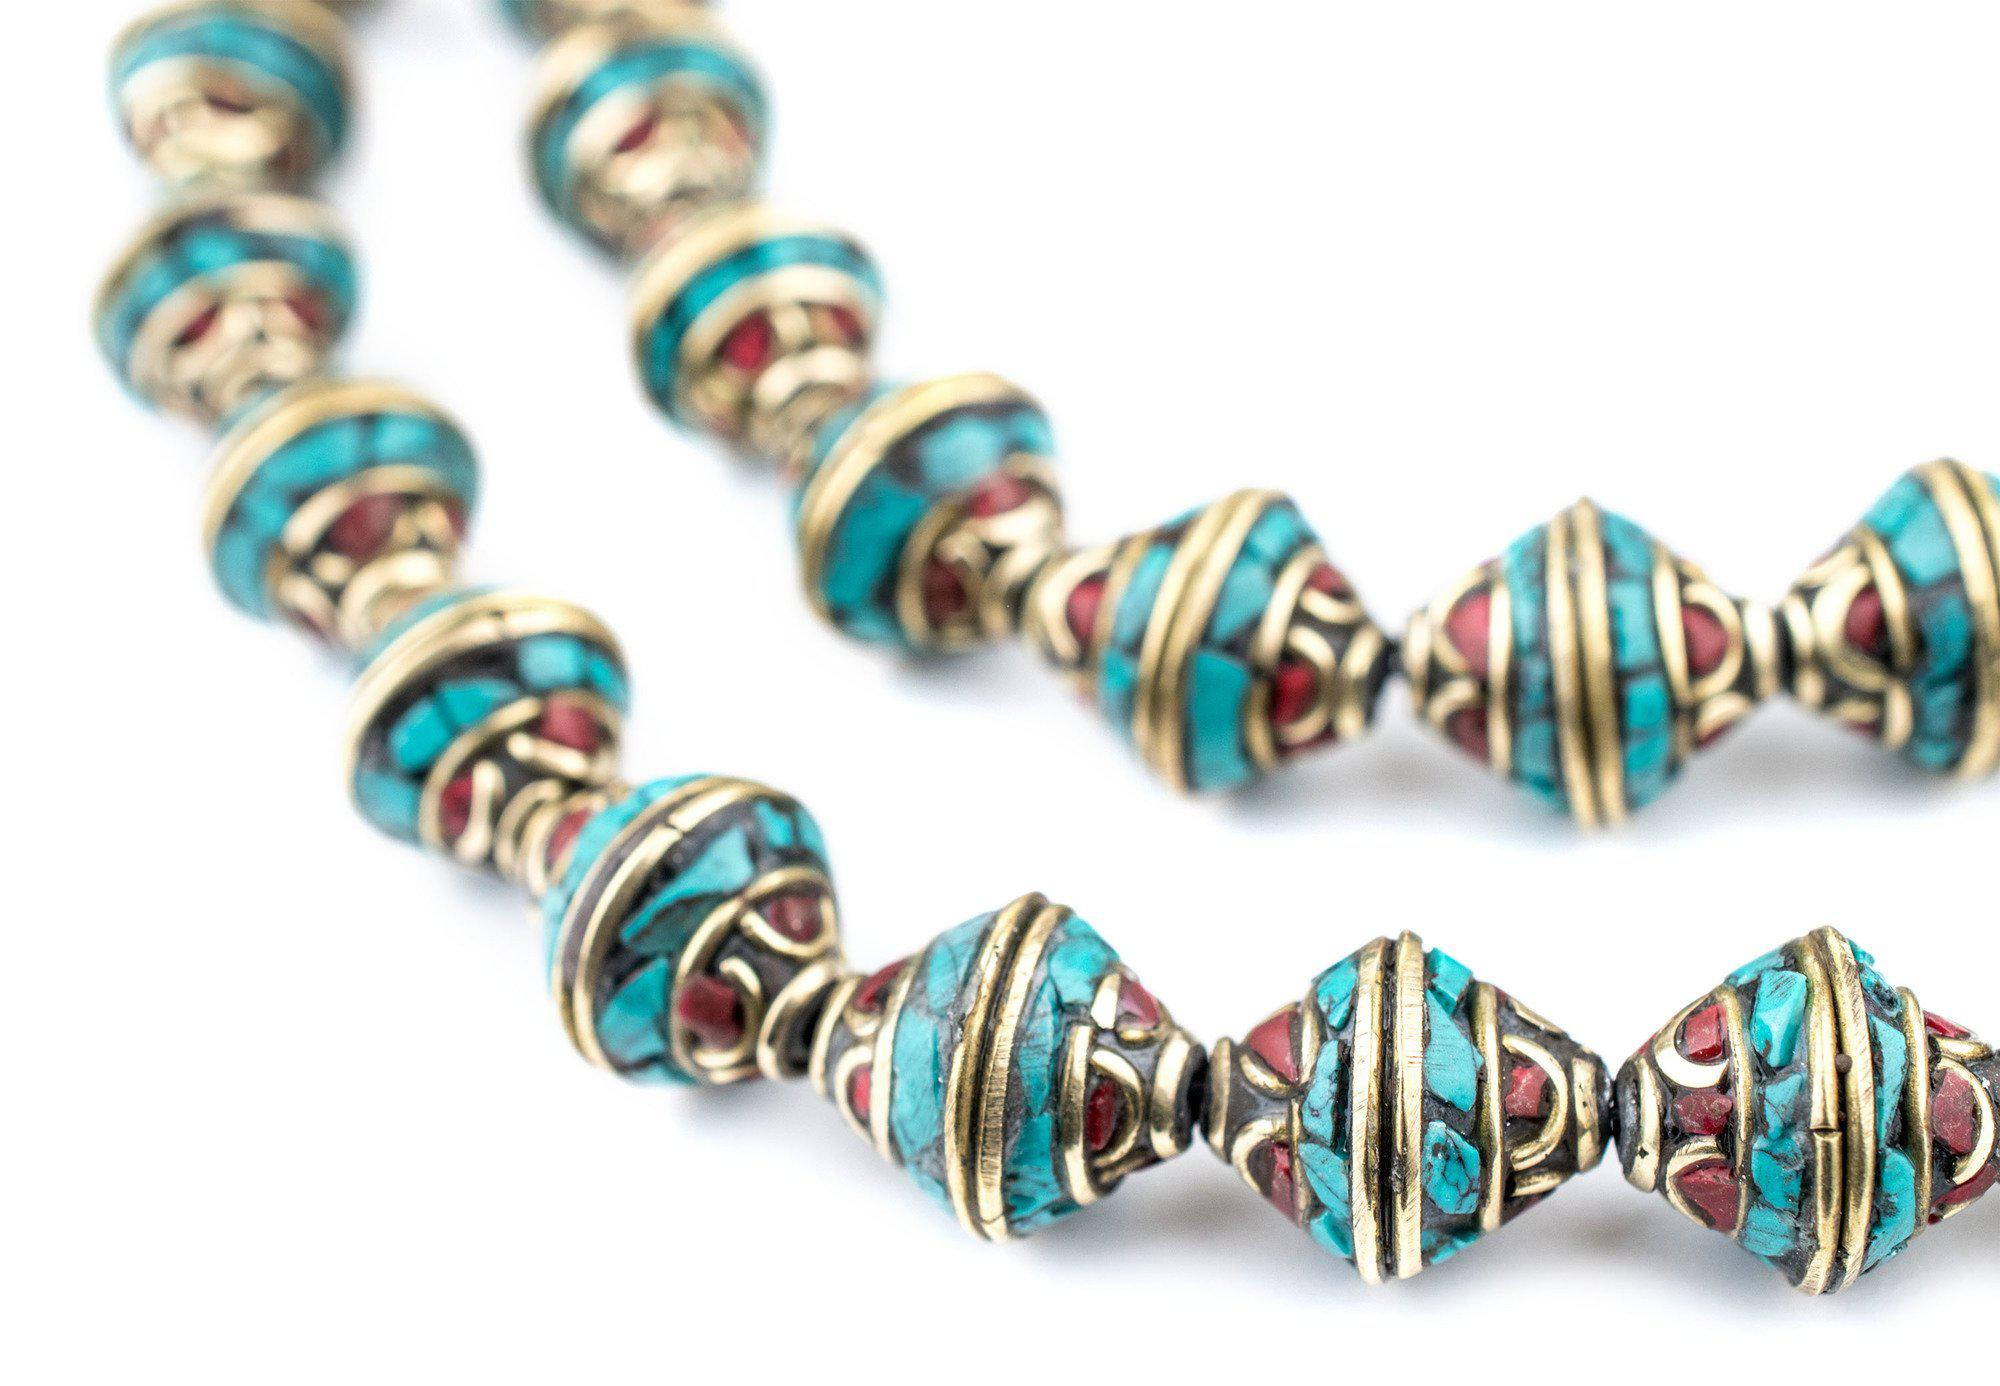 Premium Bicone Inlaid Nepali Brass Beads 14x12mm Multicolor 28 Inch Strand